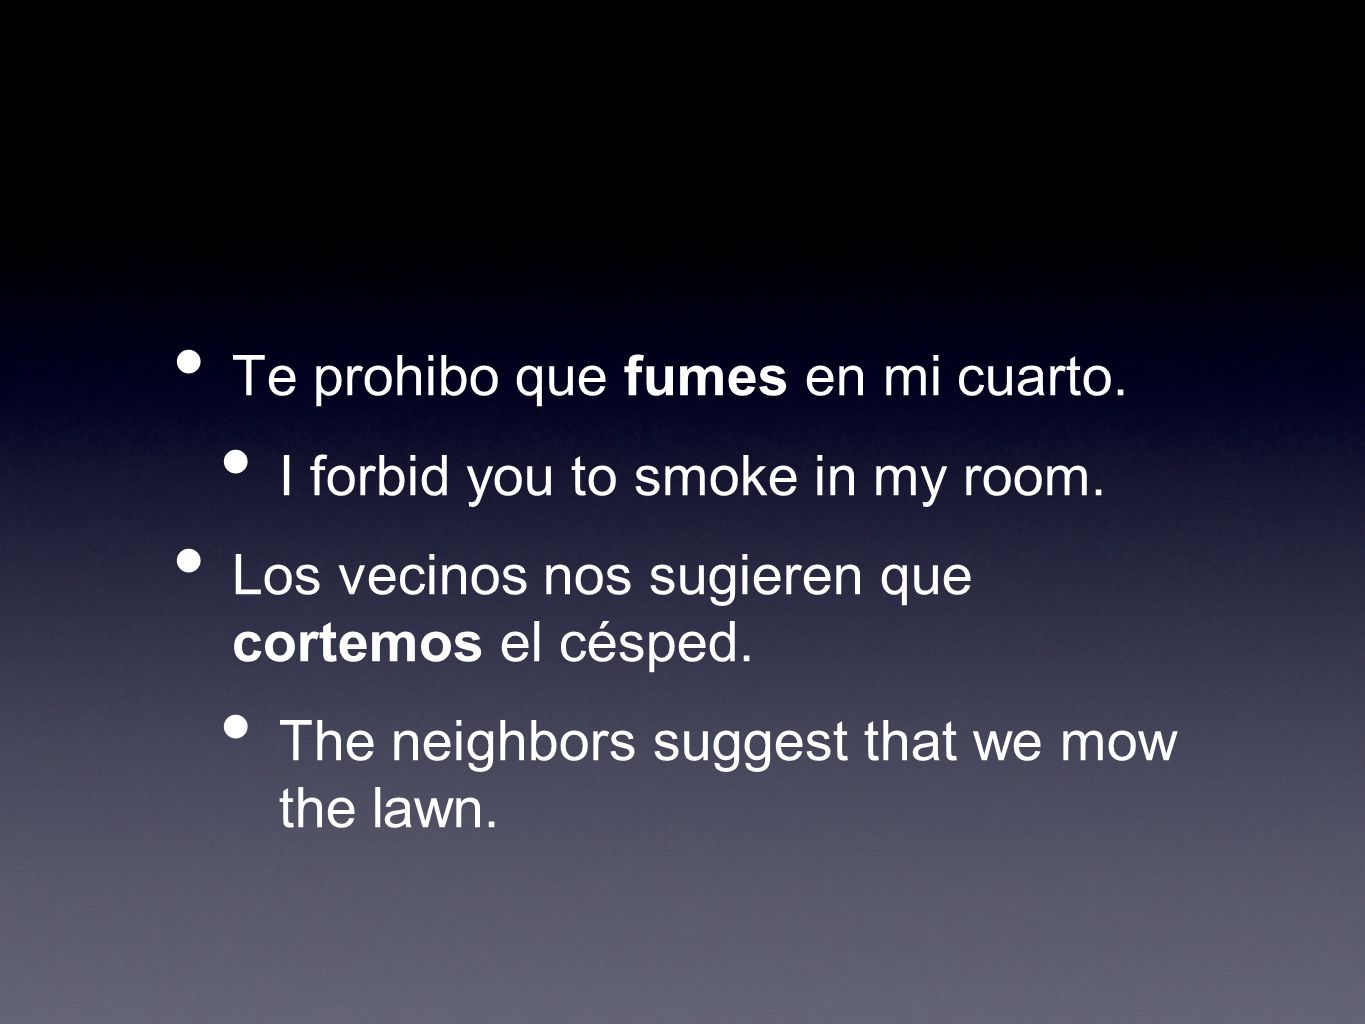 Te prohibo que fumes en mi cuarto. I forbid you to smoke in my room.